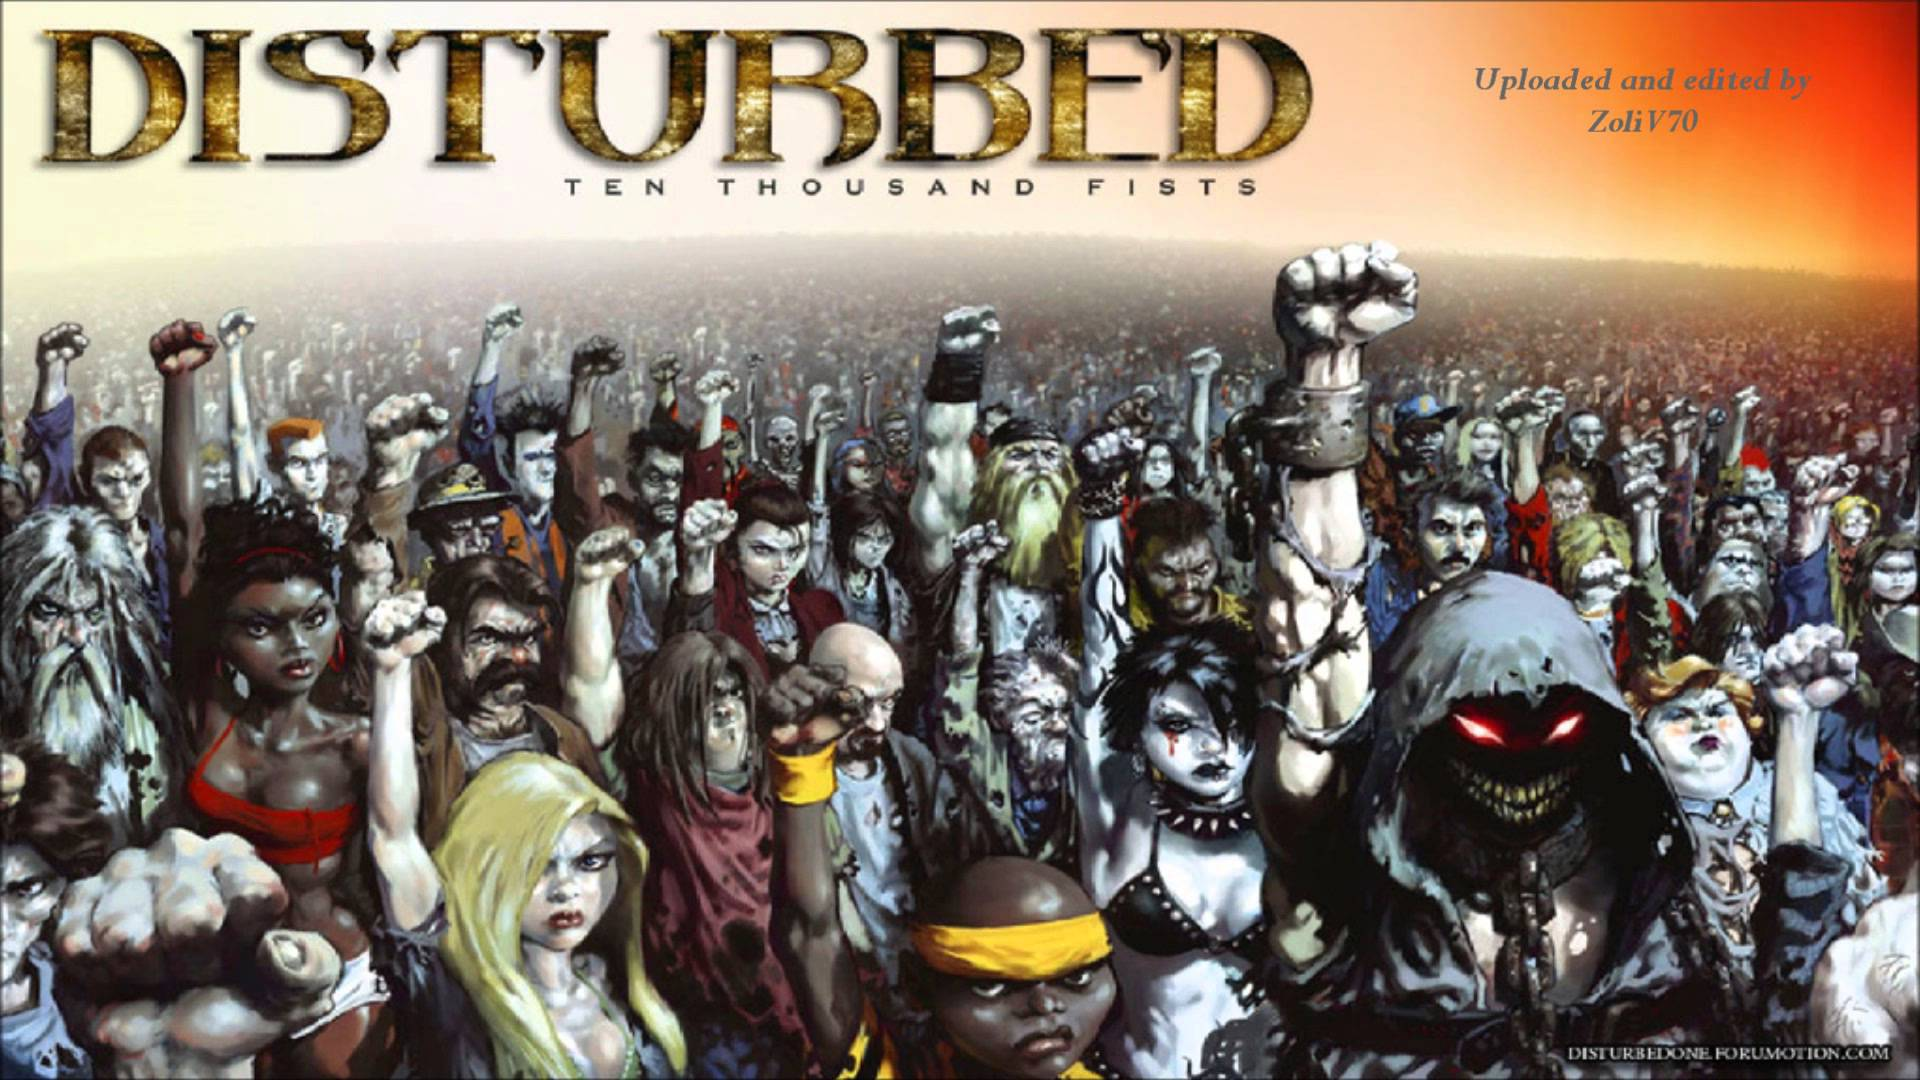 Ten thousand fist by disturbed